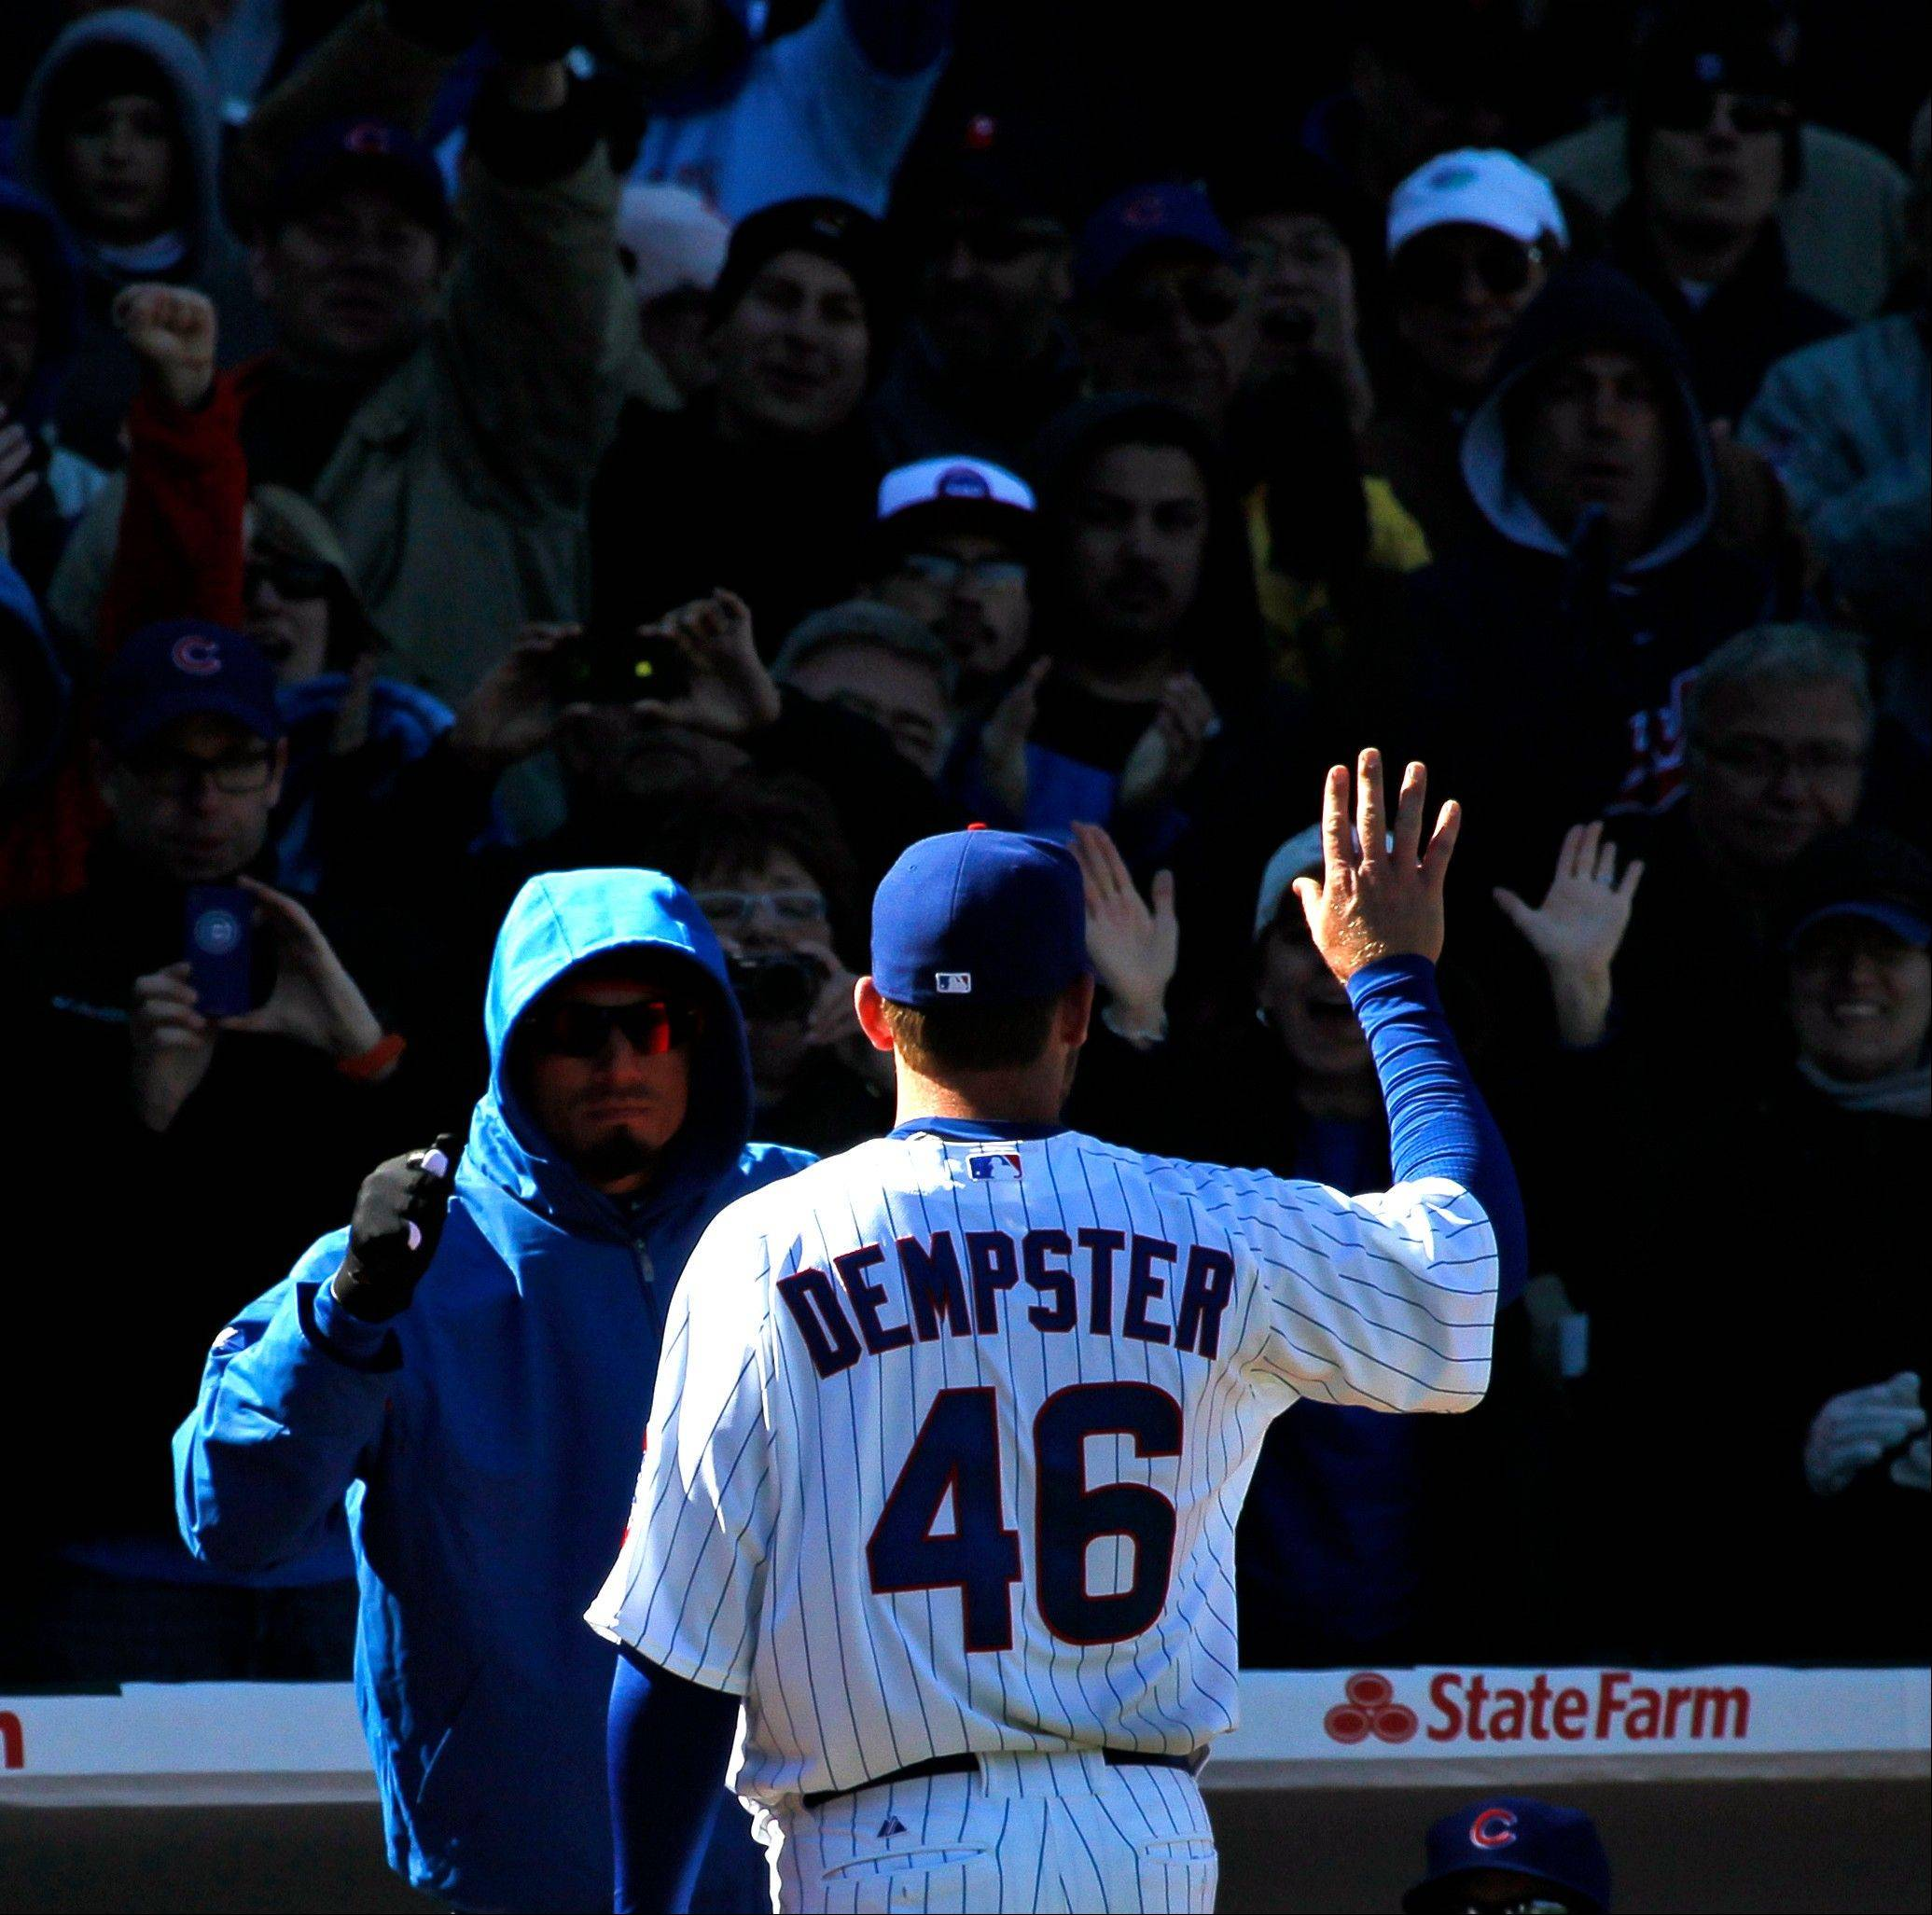 Chicago Cubs starting pitcher Ryan Dempster waves to the crowd as he leaves the game and walks towards a hooded Matt Garza in the dugout, during the eighth inning of an opening day baseball game against the Washington Nationals, Thursday, April 5, 2012, in Chicago. The Nationals won 2-1.